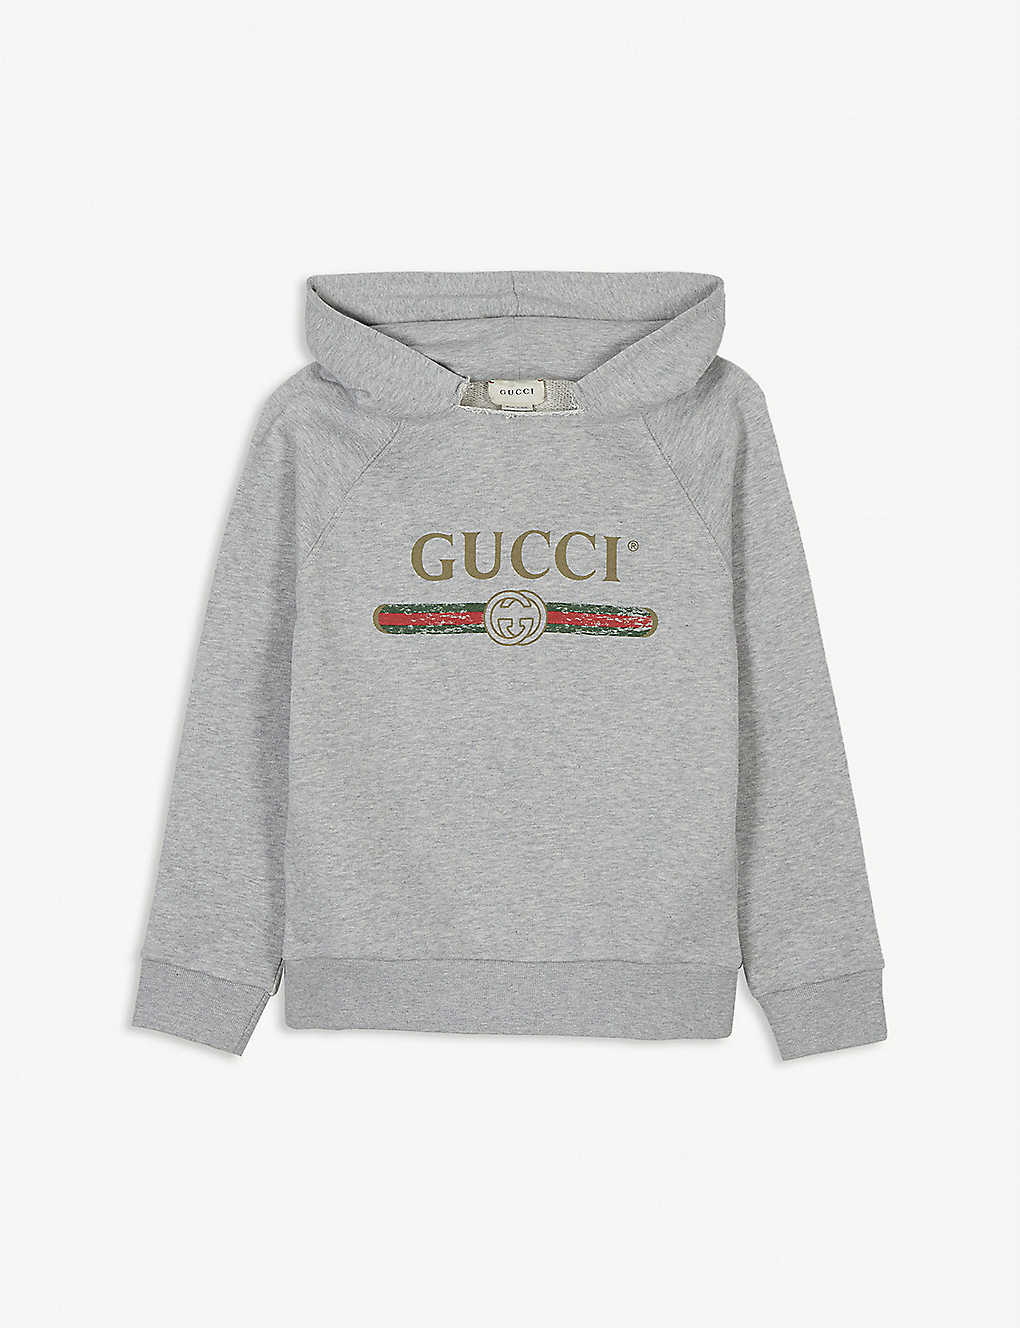 GUCCI: Cotton jersey logo hoody 4-10 years